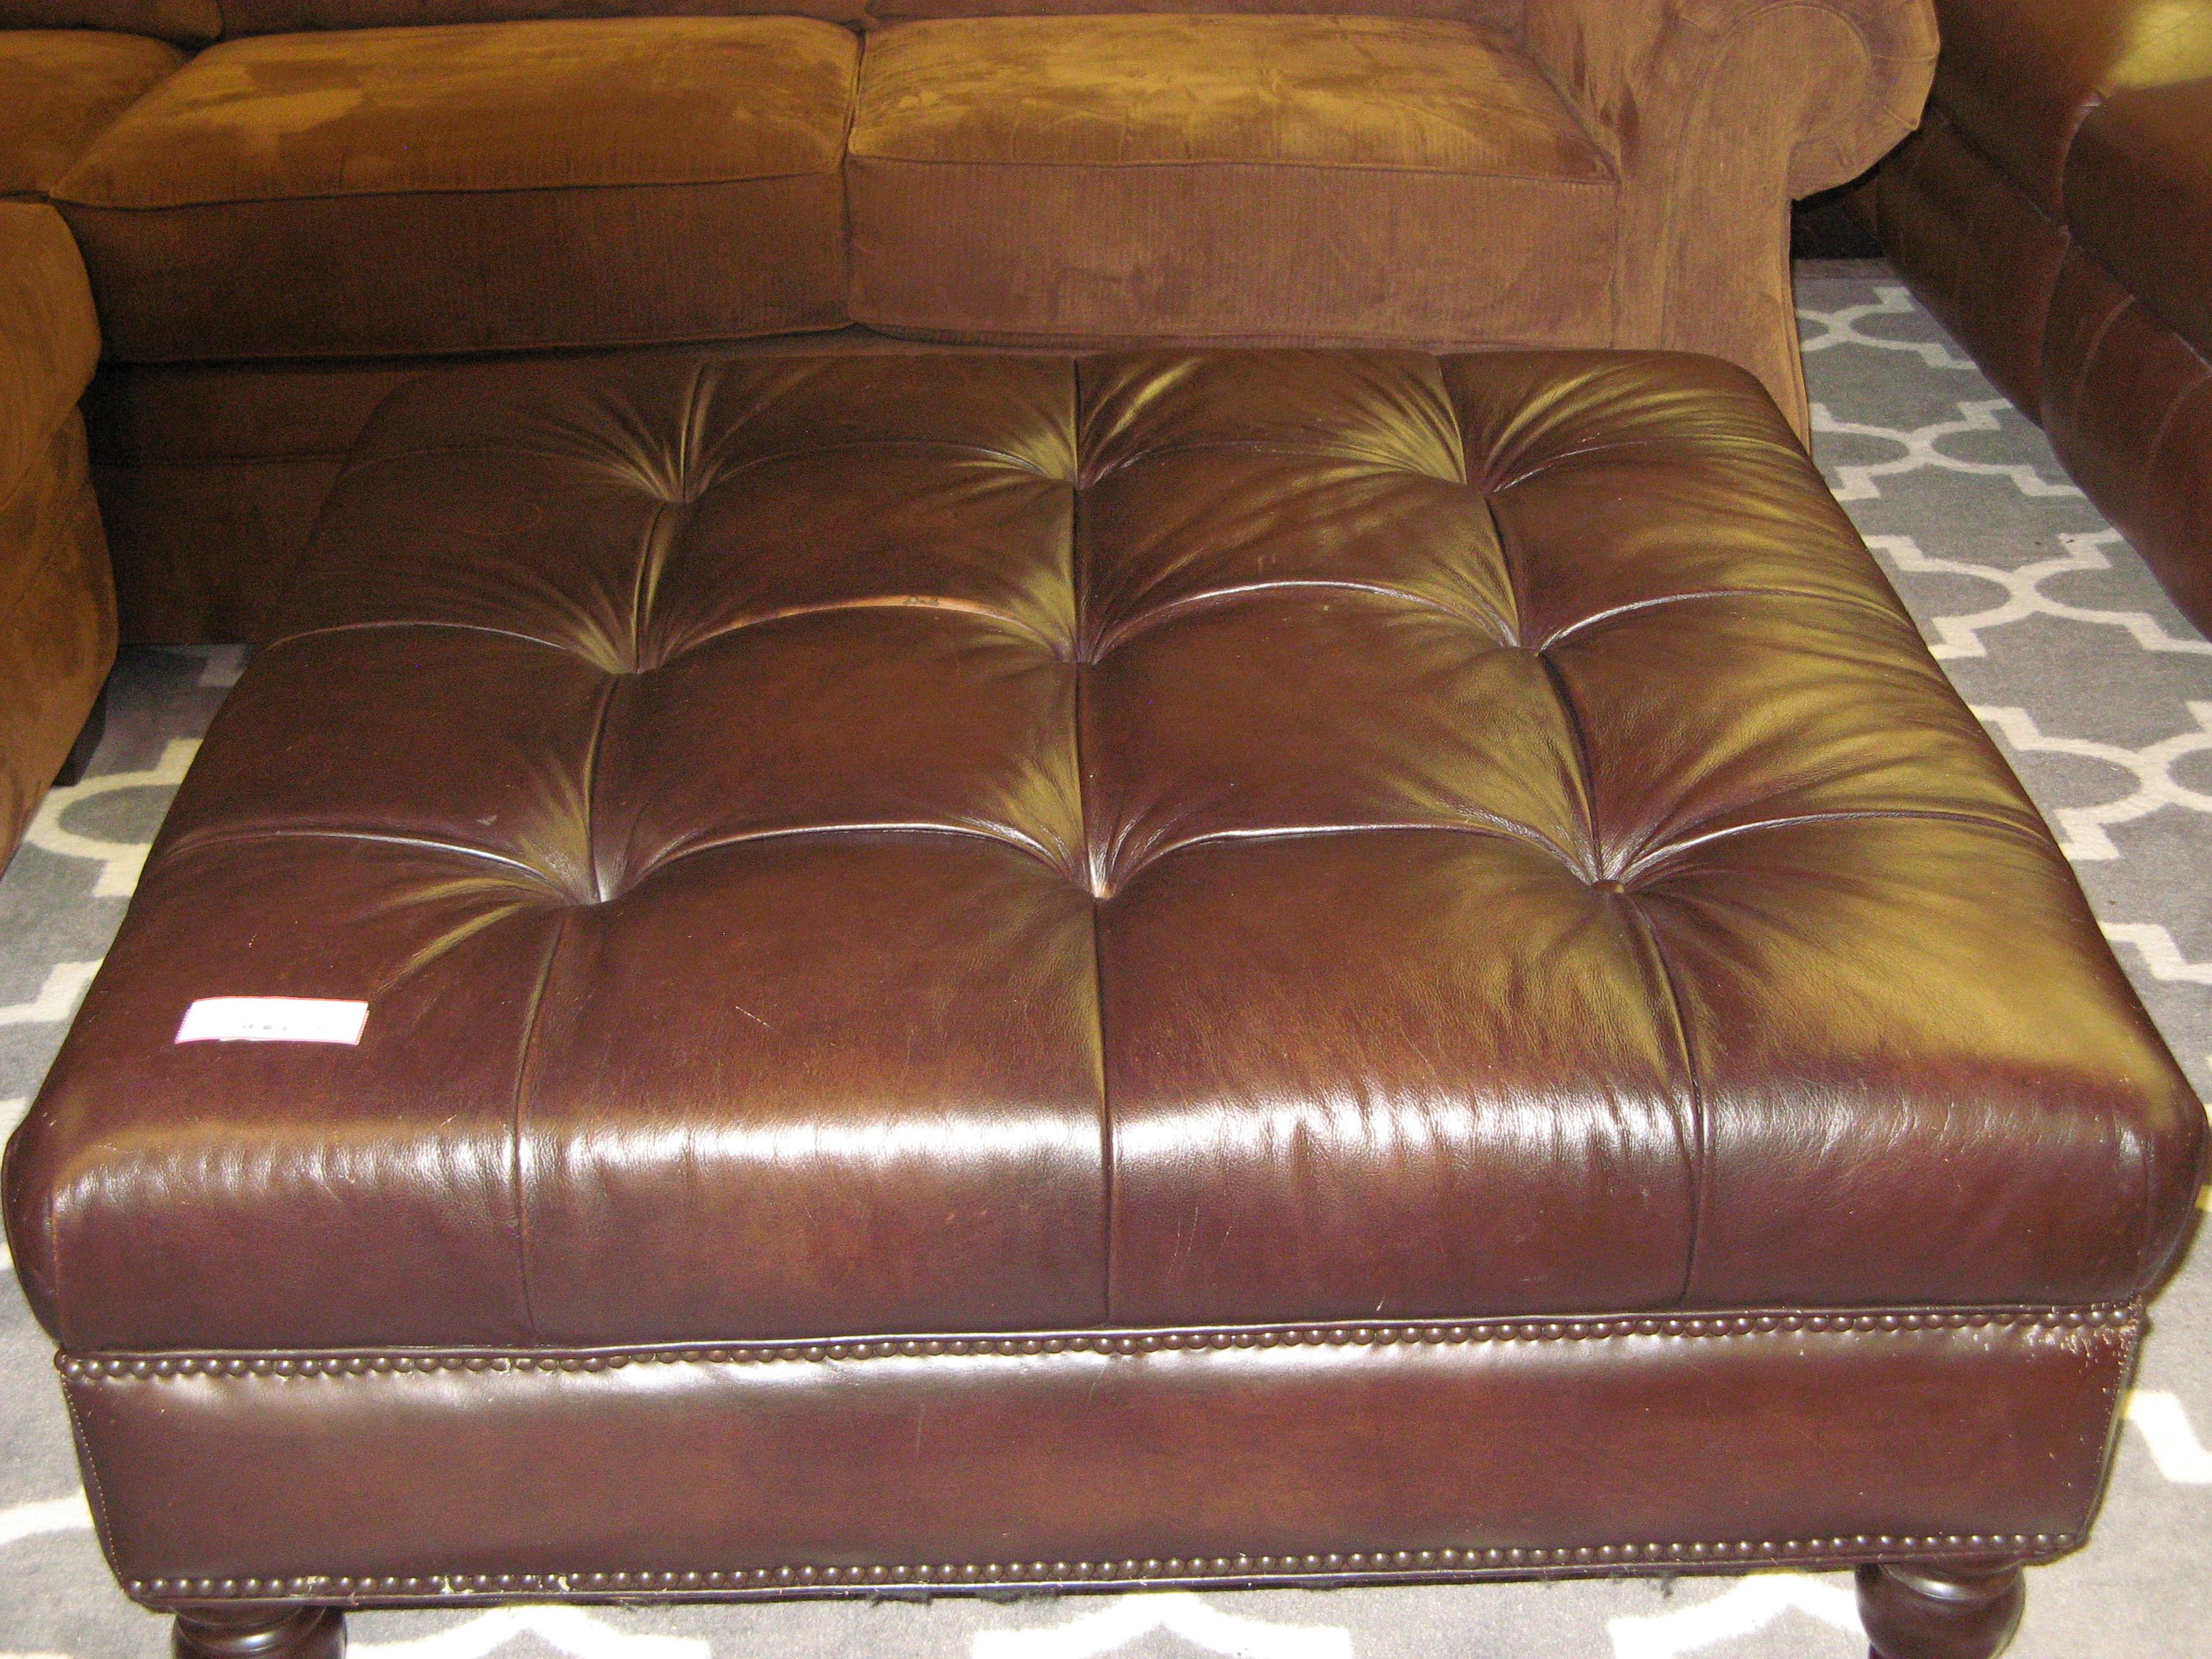 Chocolate Tufted Leather Ottoman, 40